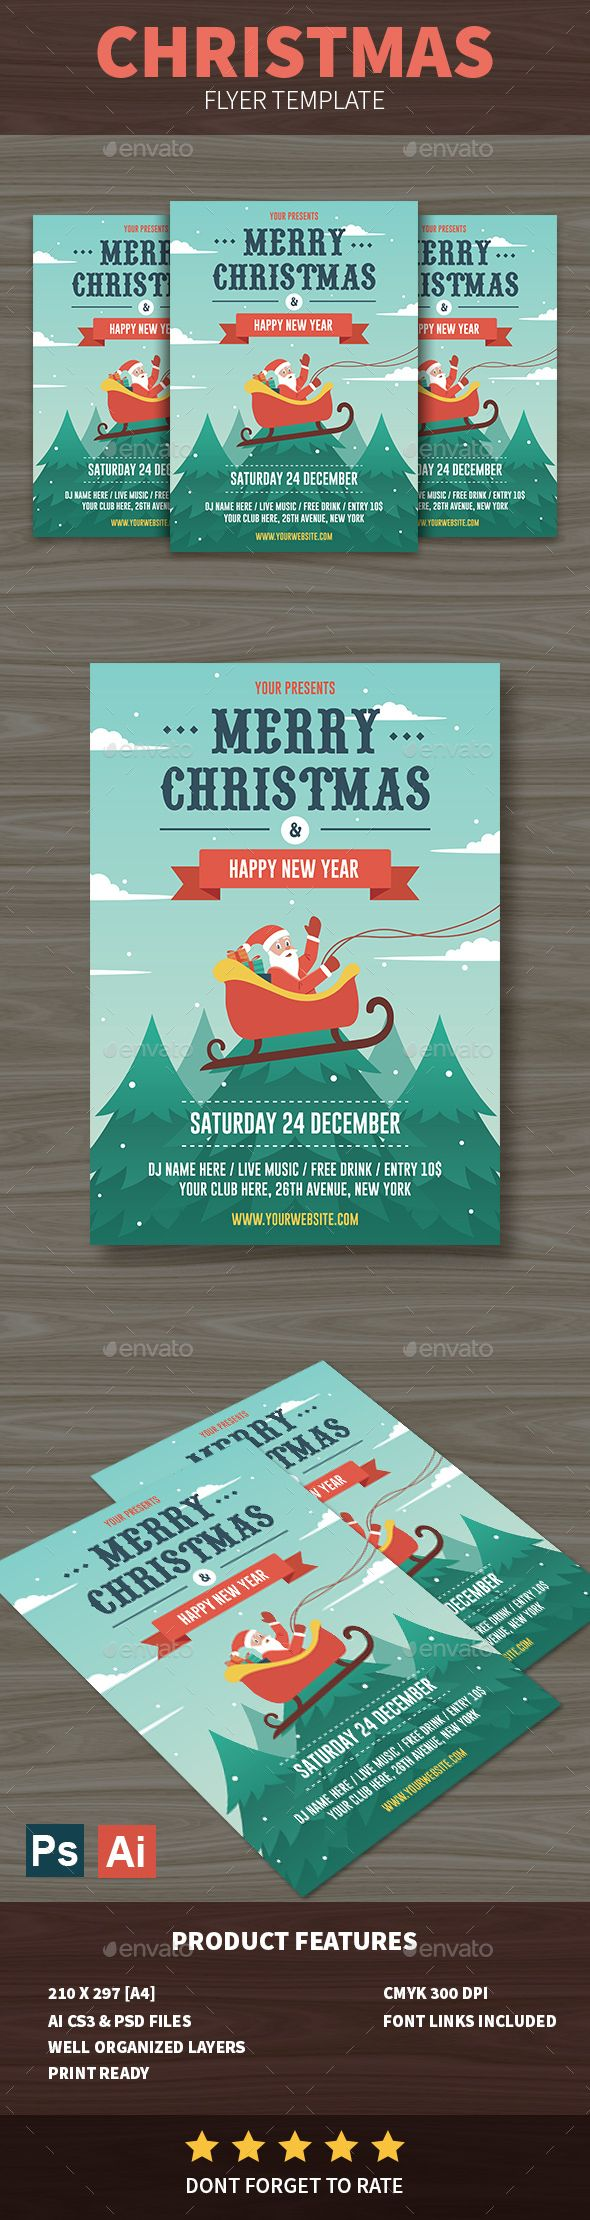 Christmas Flyer — Photoshop PSD #holiday #card • Download ➝ https://graphicriver.net/item/christmas-flyer/18932775?ref=pxcr